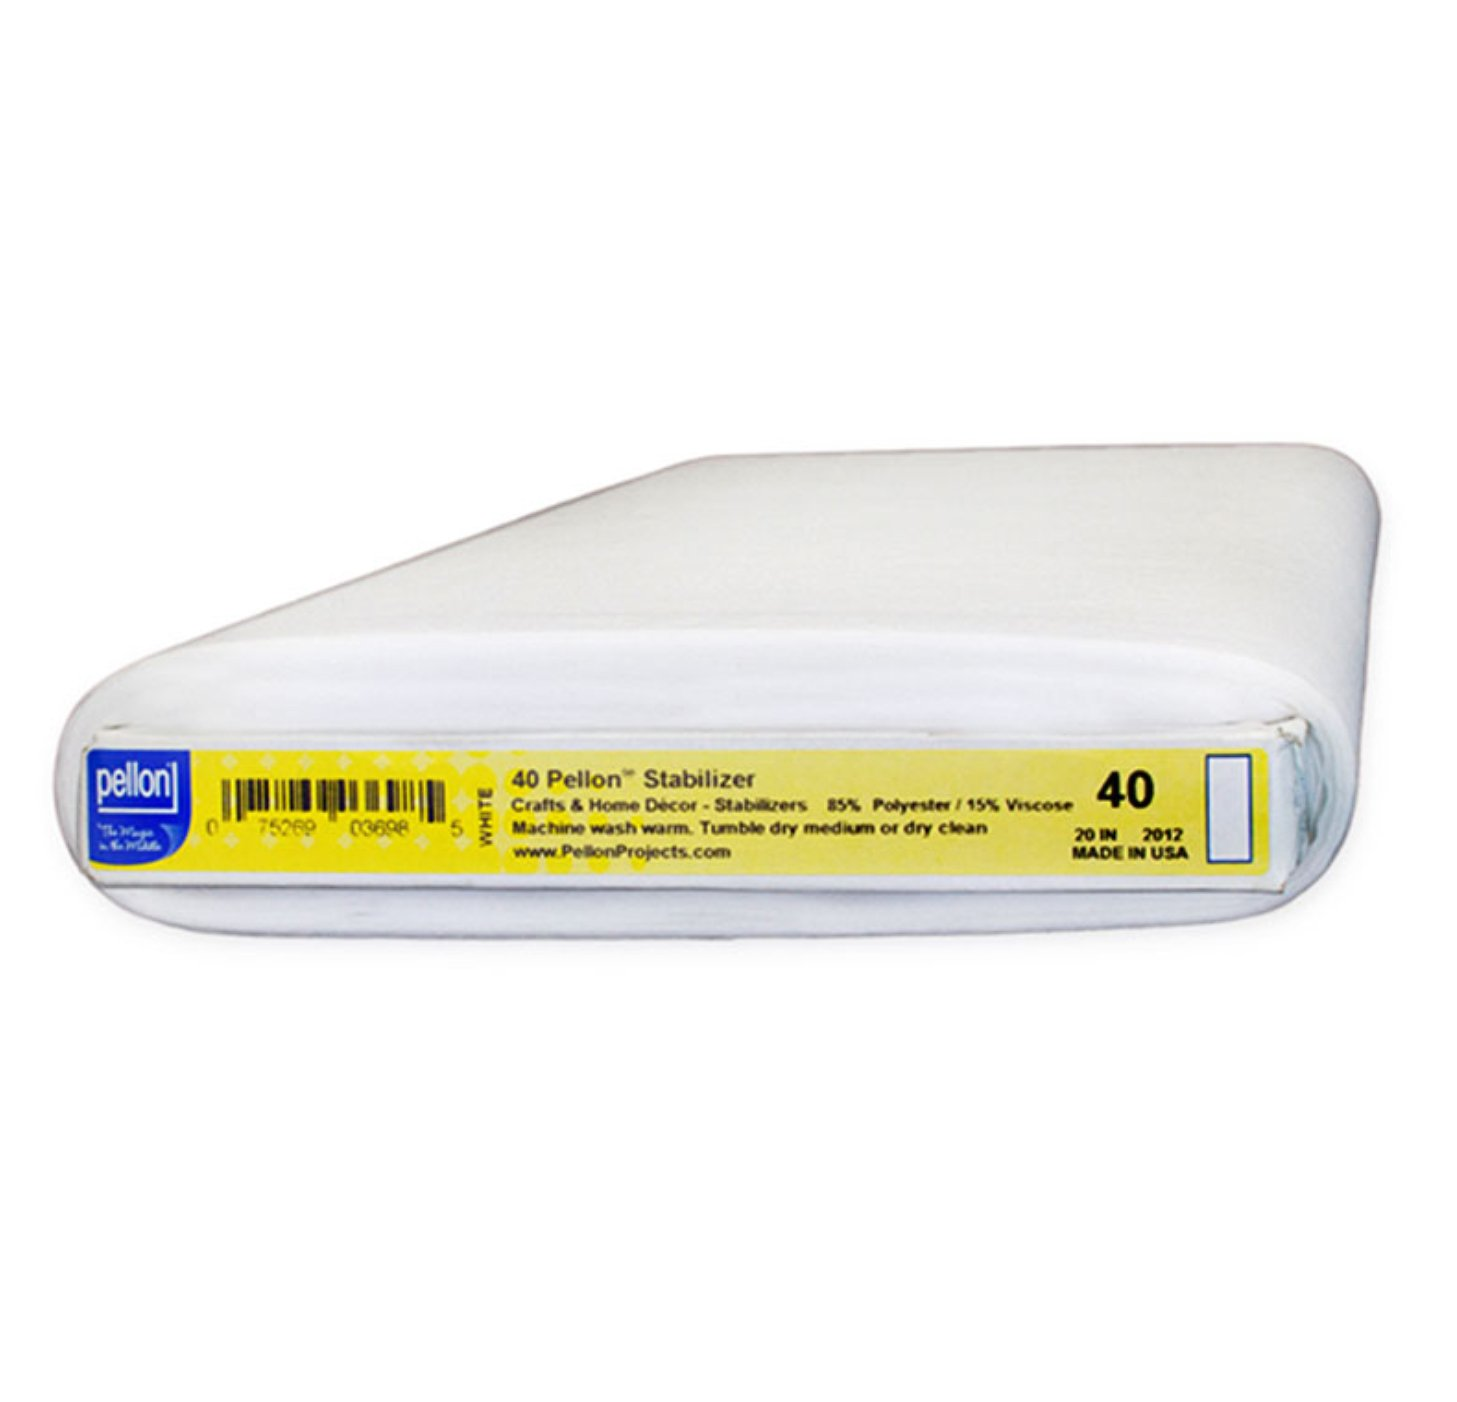 Pellon #40 Sew-in Medium Weight Interfacing 20 wide for Medical Masks